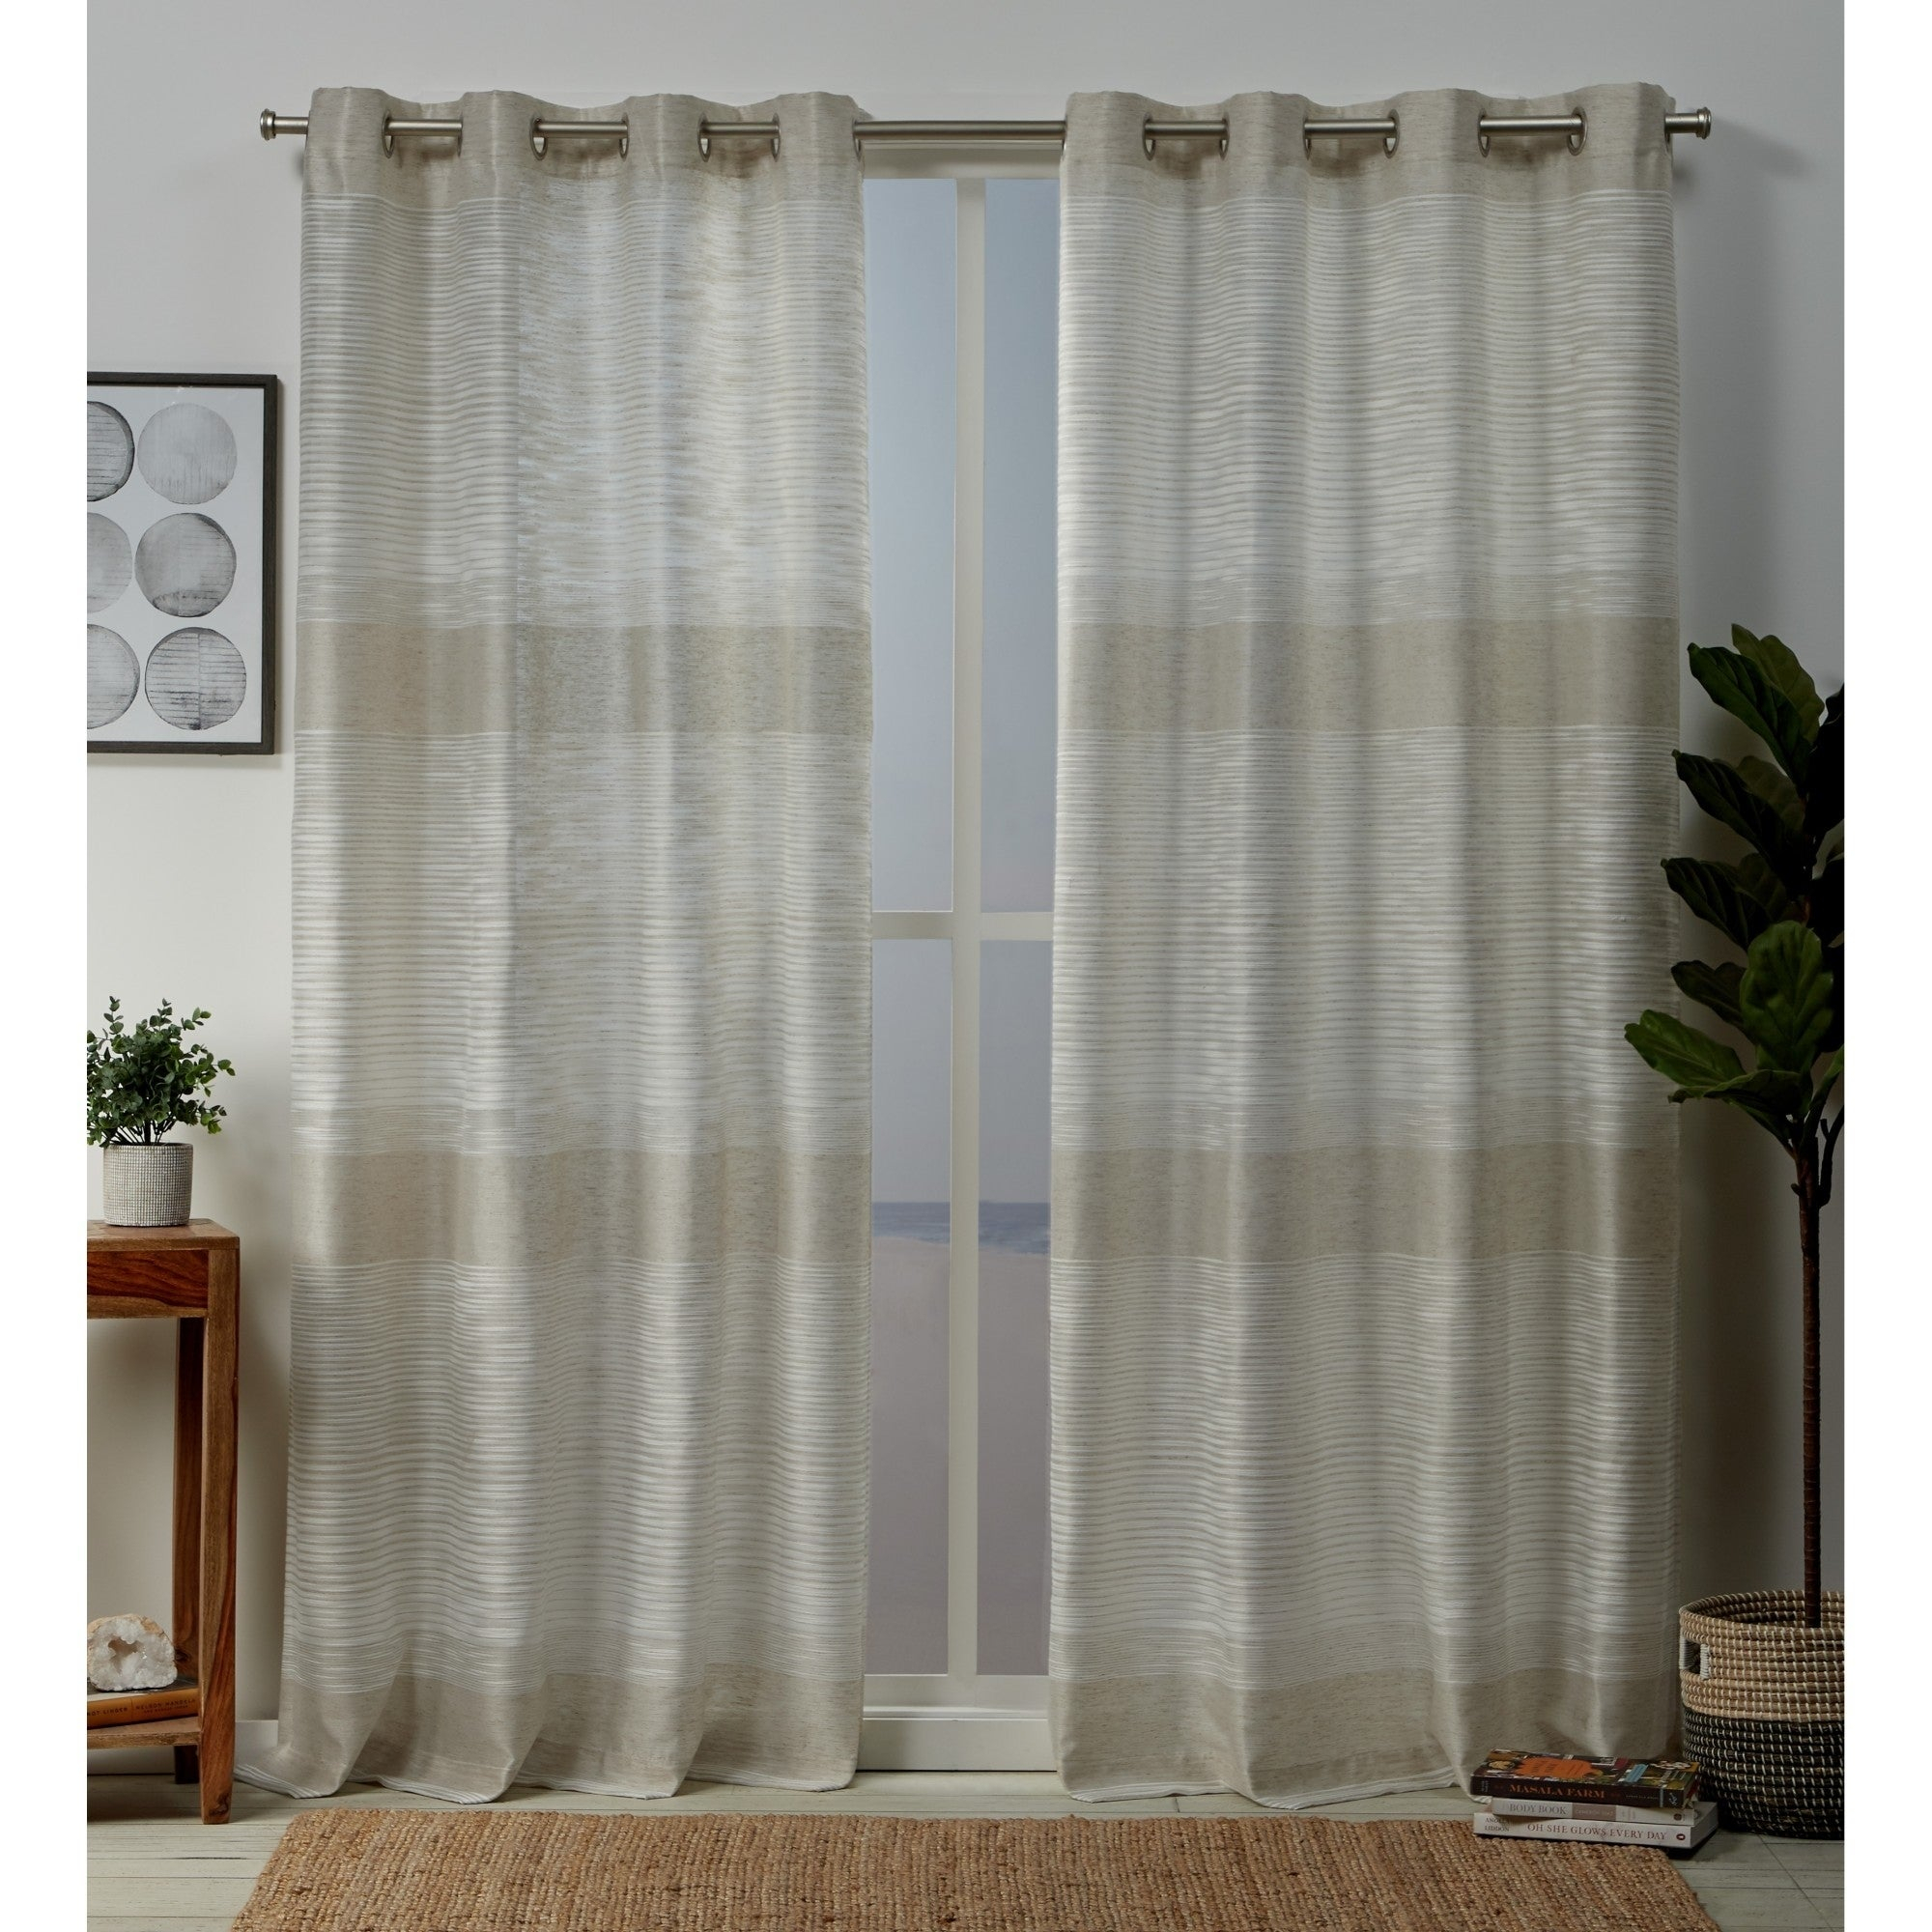 Copper Grove Panagyurishte Striped Grommet Top Curtain Panel Pair With Regard To Wilshire Burnout Grommet Top Curtain Panel Pairs (View 13 of 30)